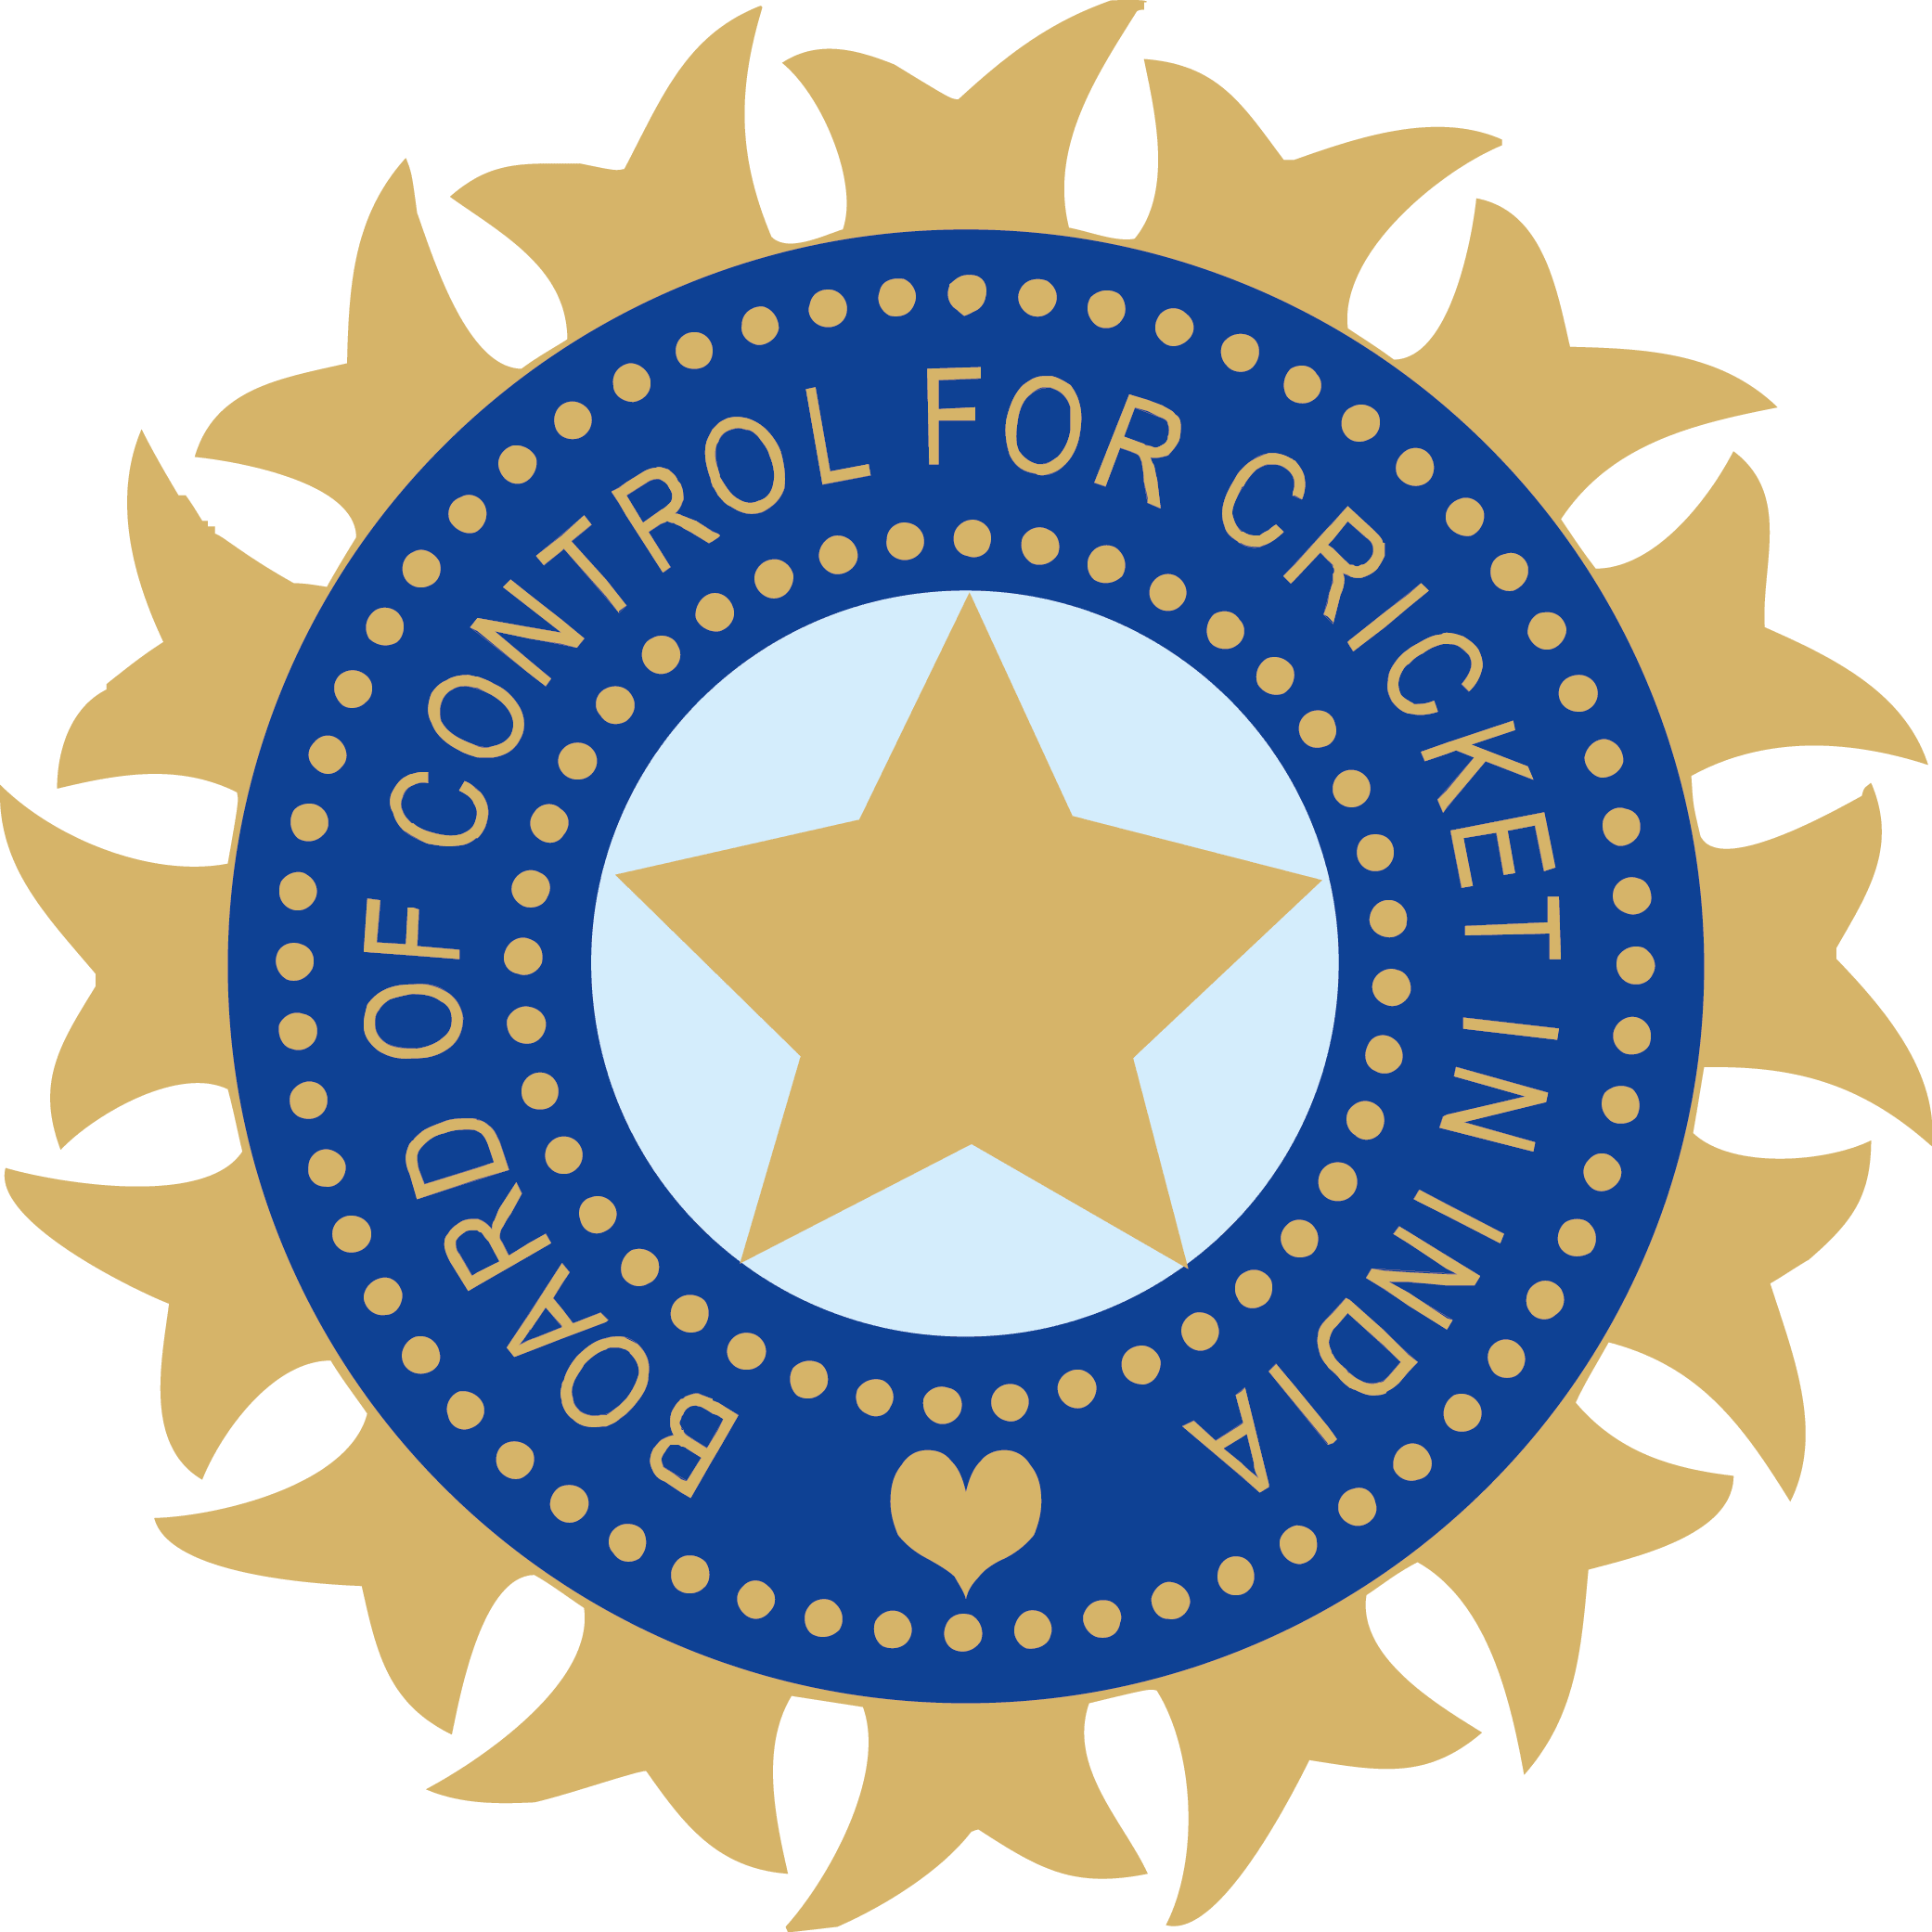 Board of Control for Cricket in India (BCCI) Logo [EPS File] Vector EPS Free Download, Logo, Ico ...